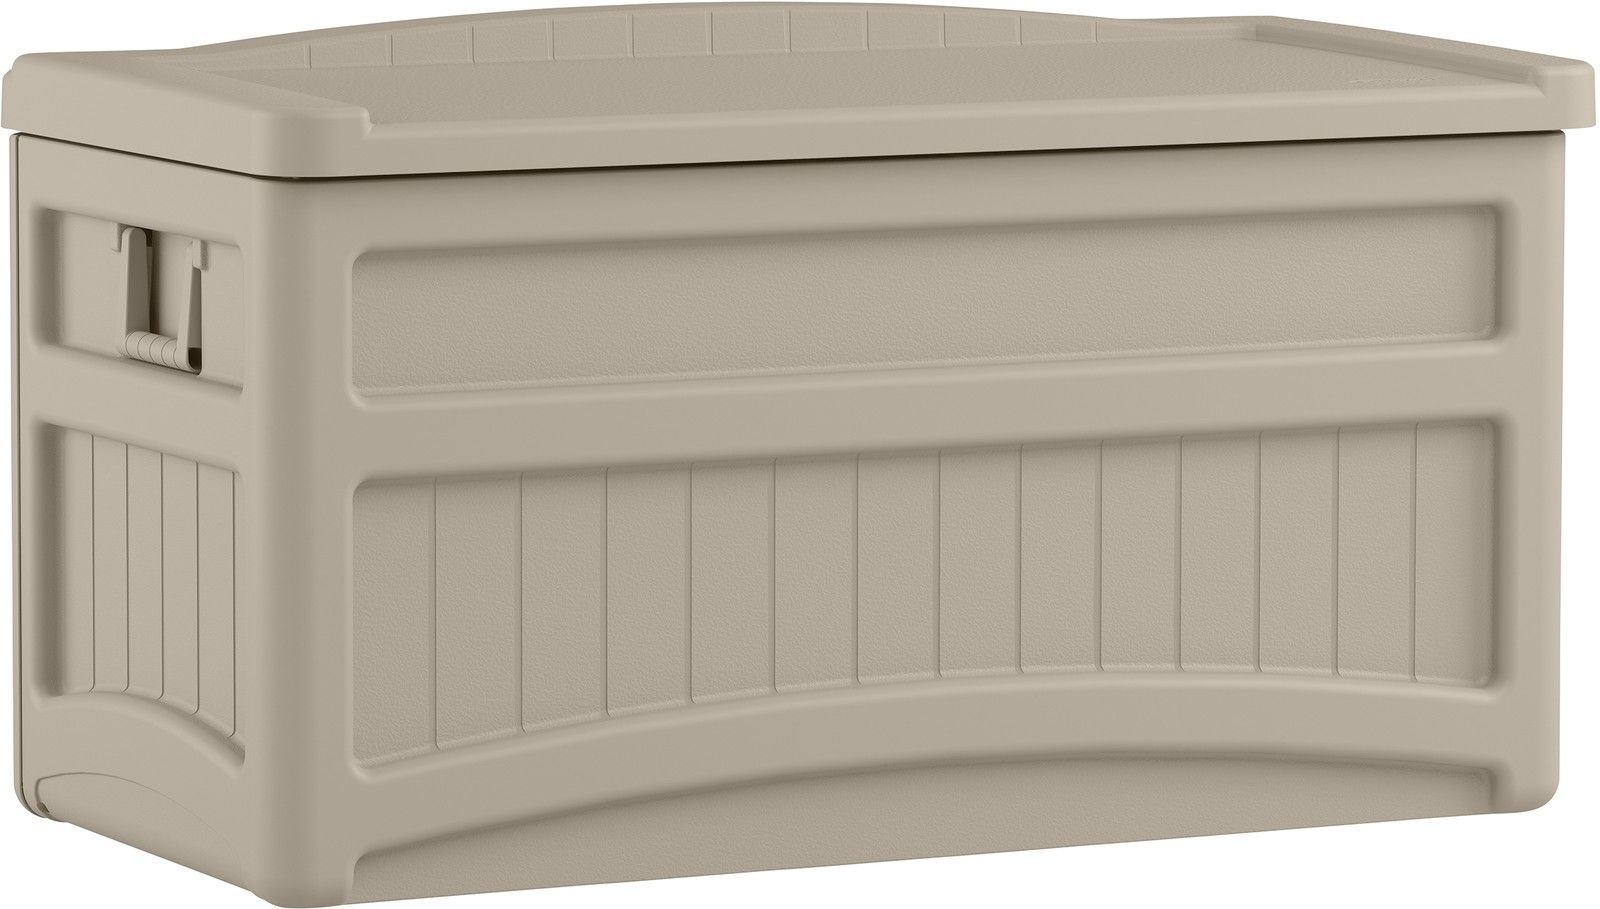 Patio Cushion Storage Bench Outdoor 73 Gallon Deck Box With Seat